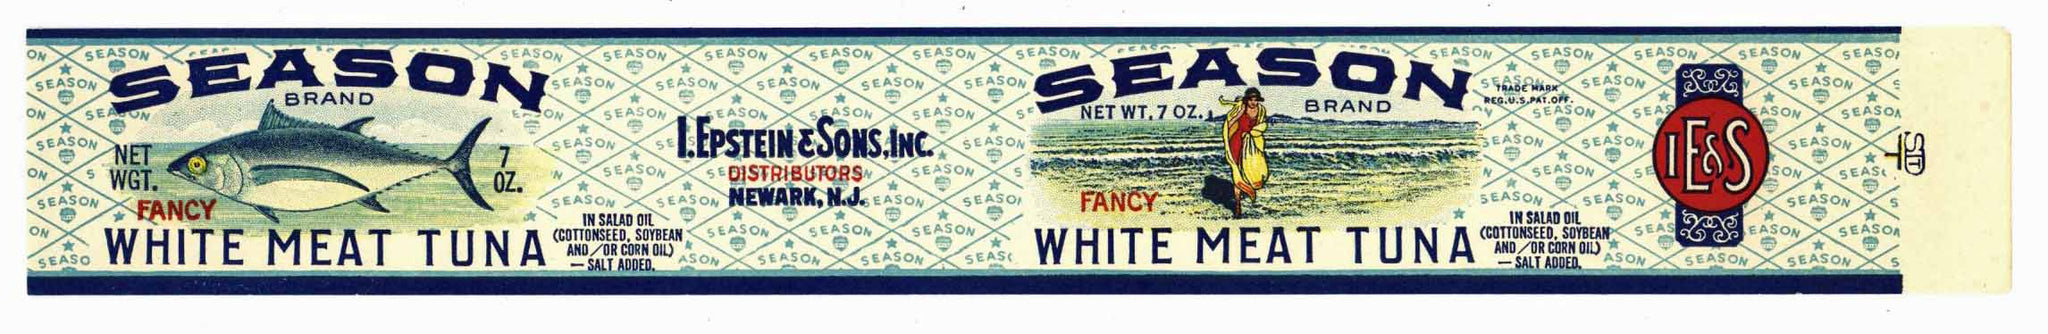 Season Brand Vintage New Jersey Tuna Can Label